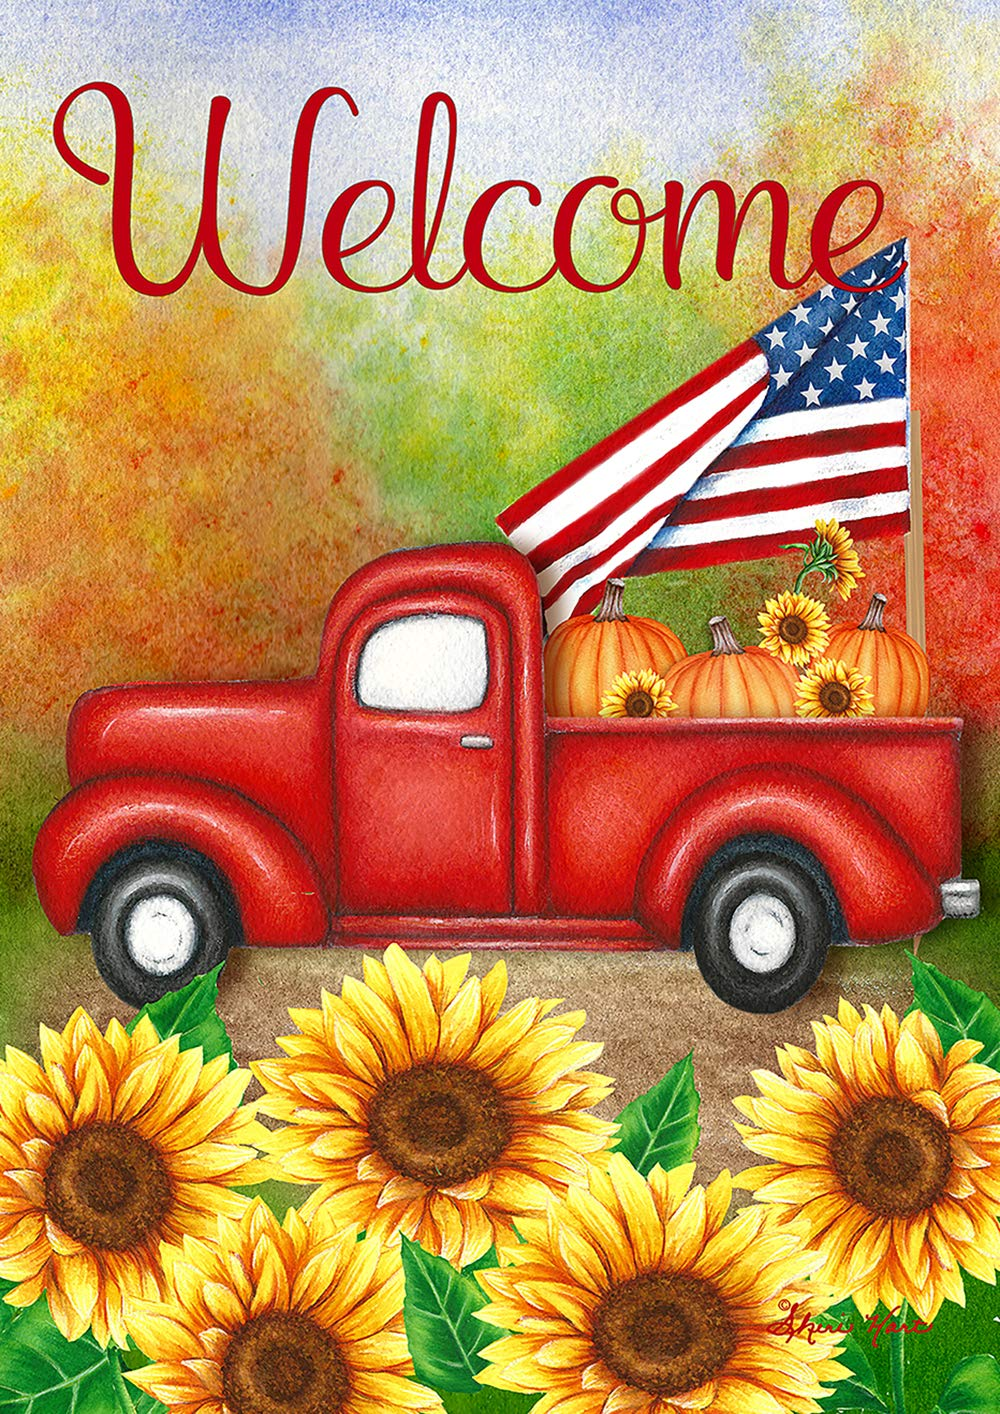 Toland Home Garden 1012207 Welcome Harvest Truck 28 x 40 inch Decorative, Fall Autumn Vintage Red Pickup, House Flag